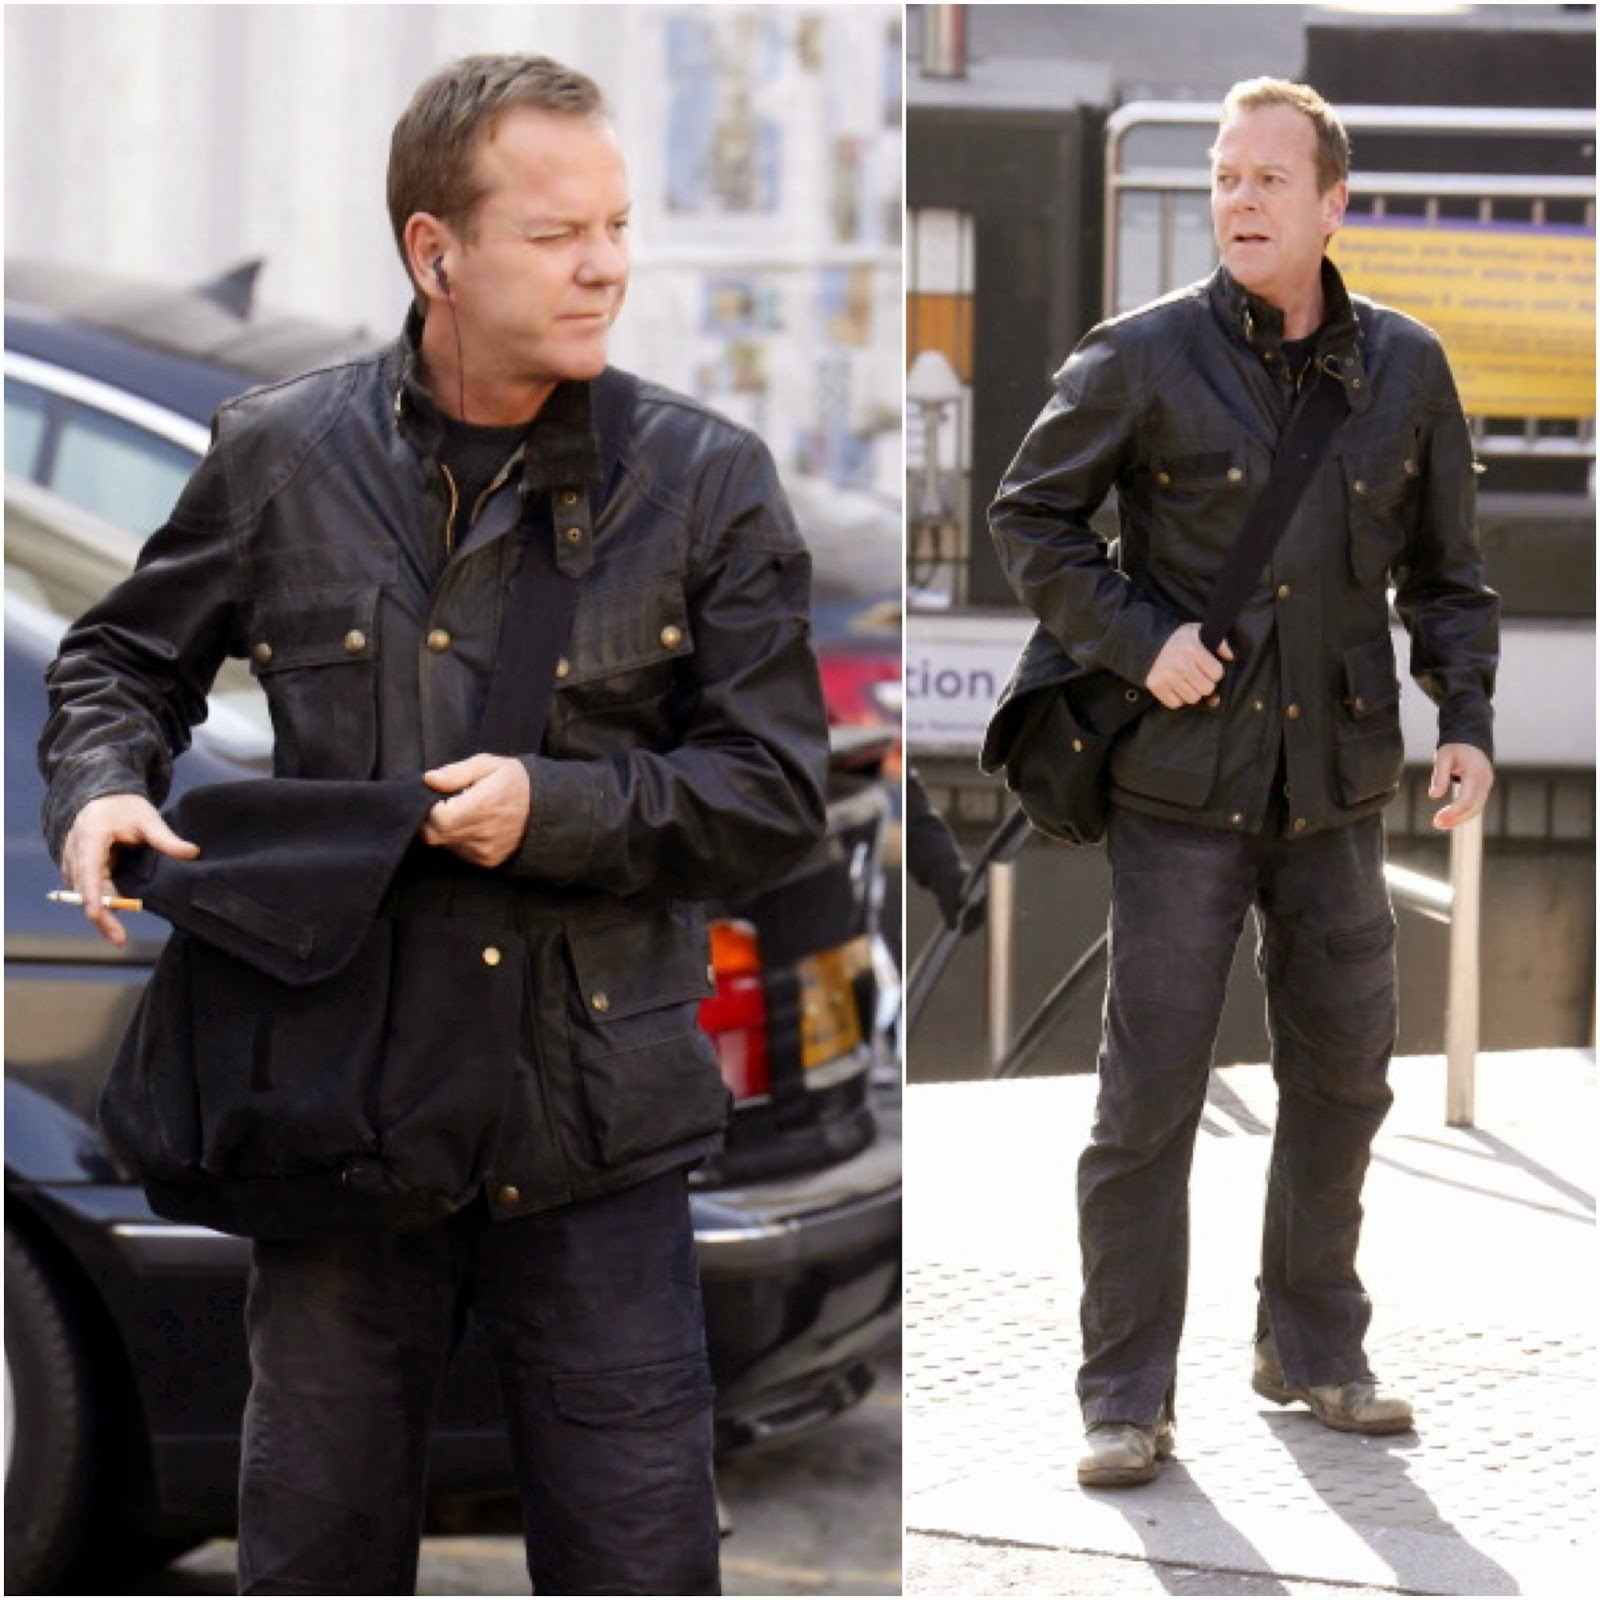 Kiefer Sutherland in Belstaff - Filming Of '24' In London